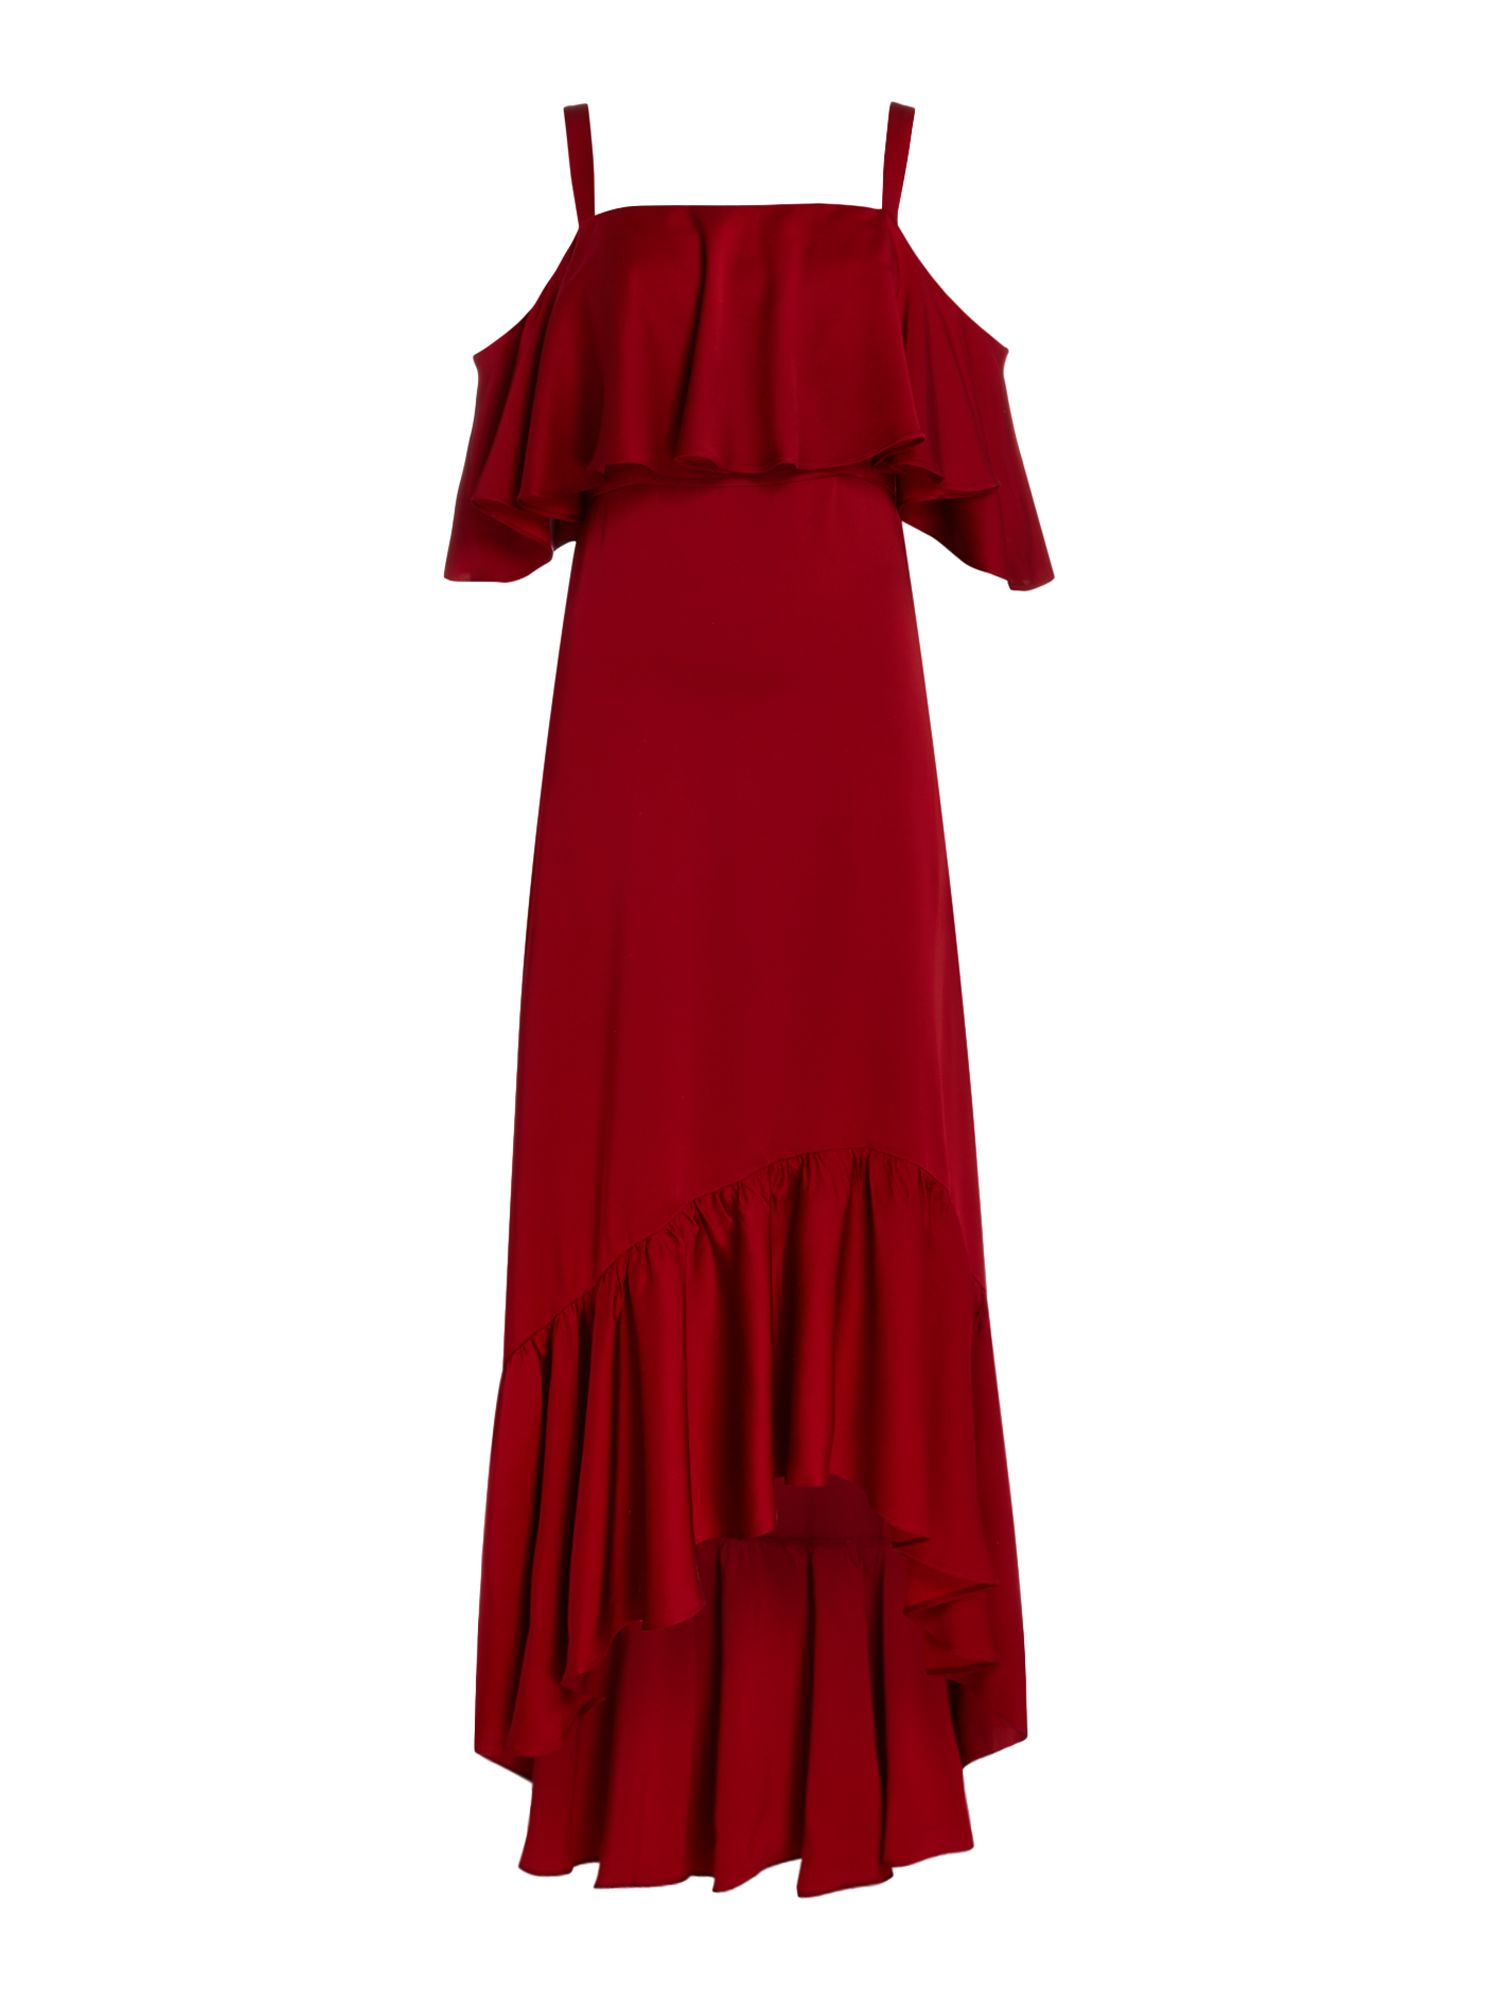 Jill Jill Stuart Midi dress with satin ruffles, Red